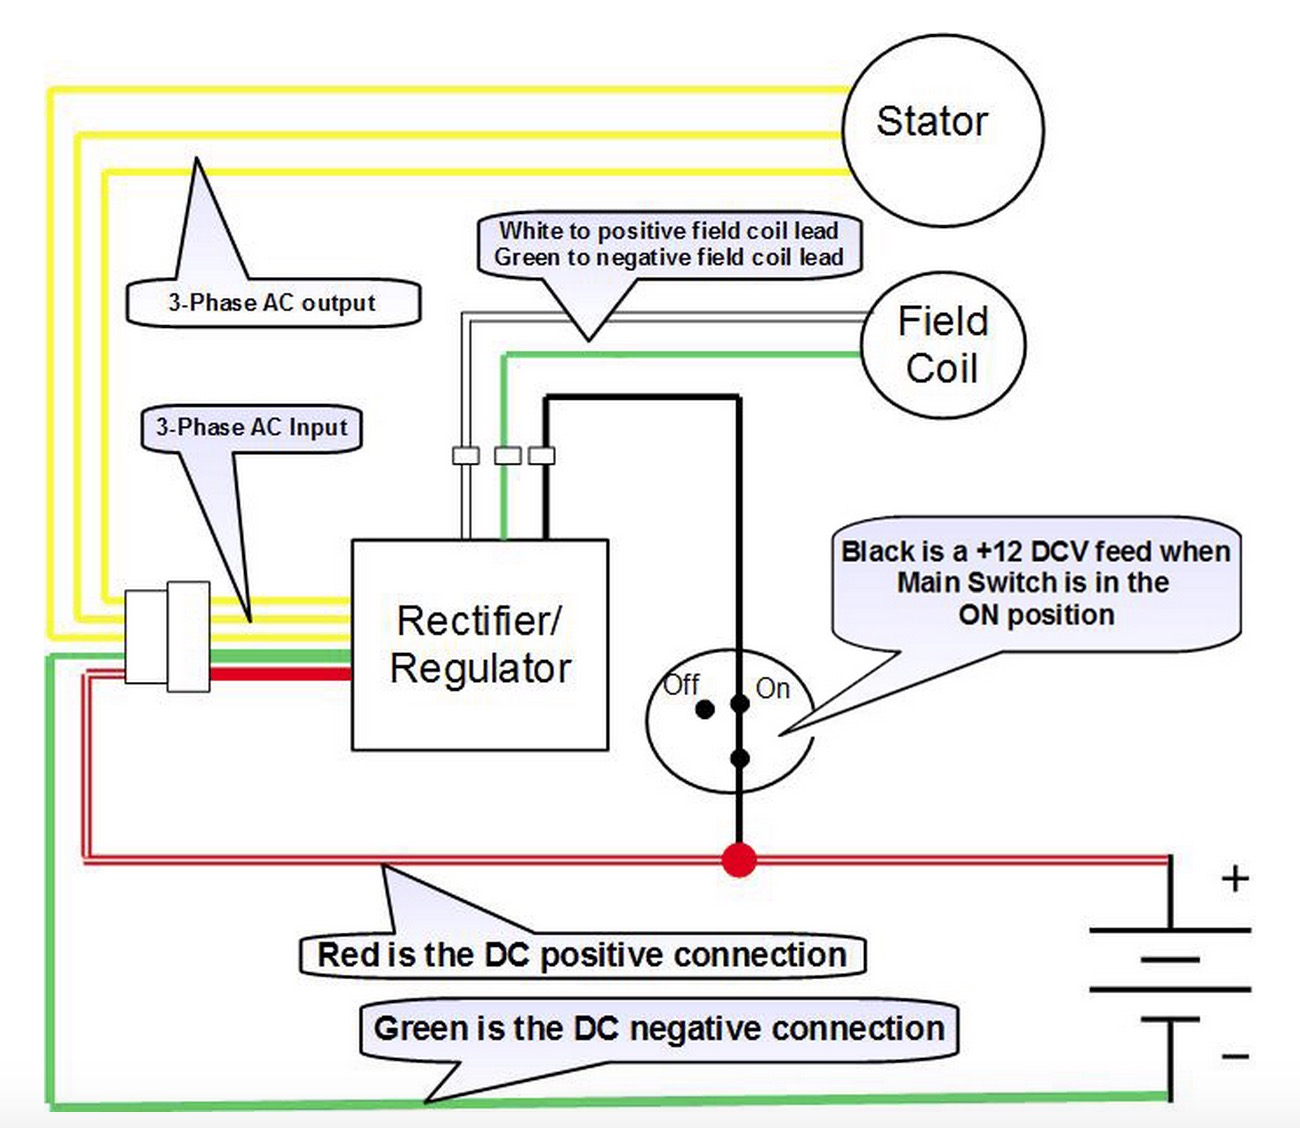 honda 10 100 e honda rectifier diagram honda ct70 rectifier diagram \u2022 free wiring 5 wire regulator rectifier wiring diagram at alyssarenee.co